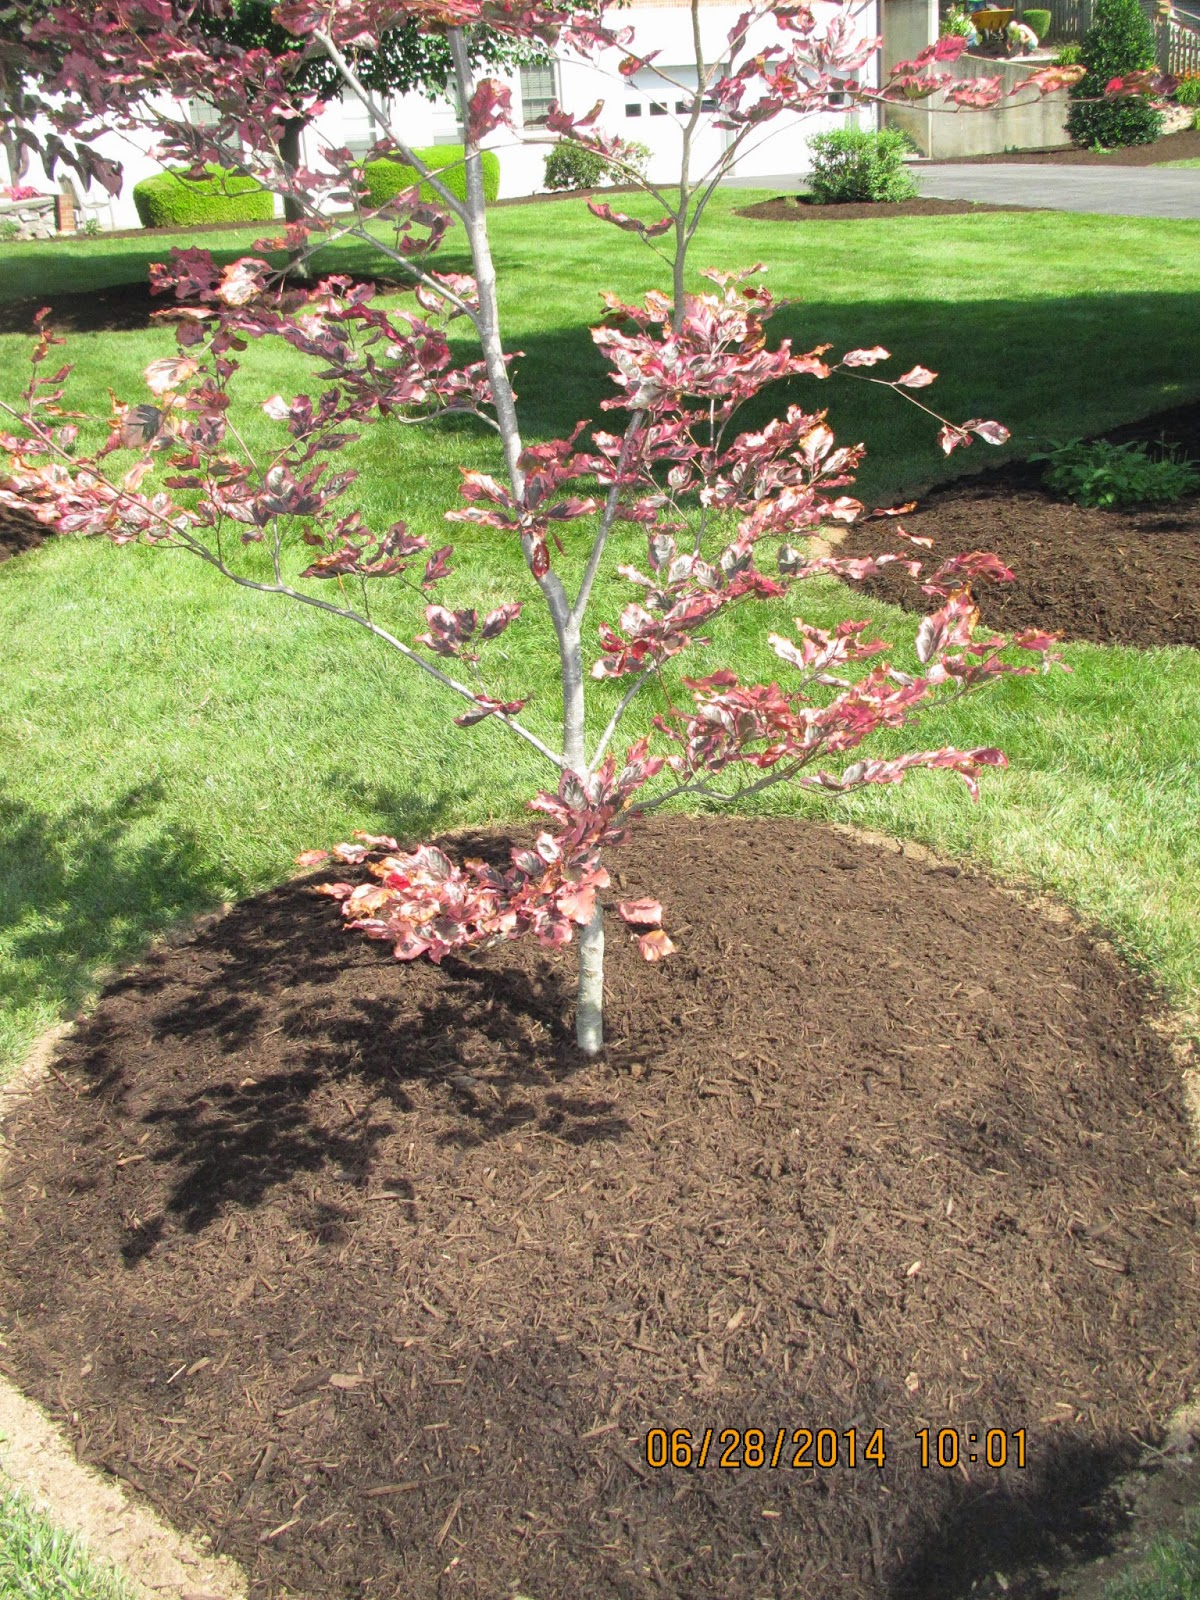 Groshs Lawn Service: Plant a new tree this year in Hagerstown, MD